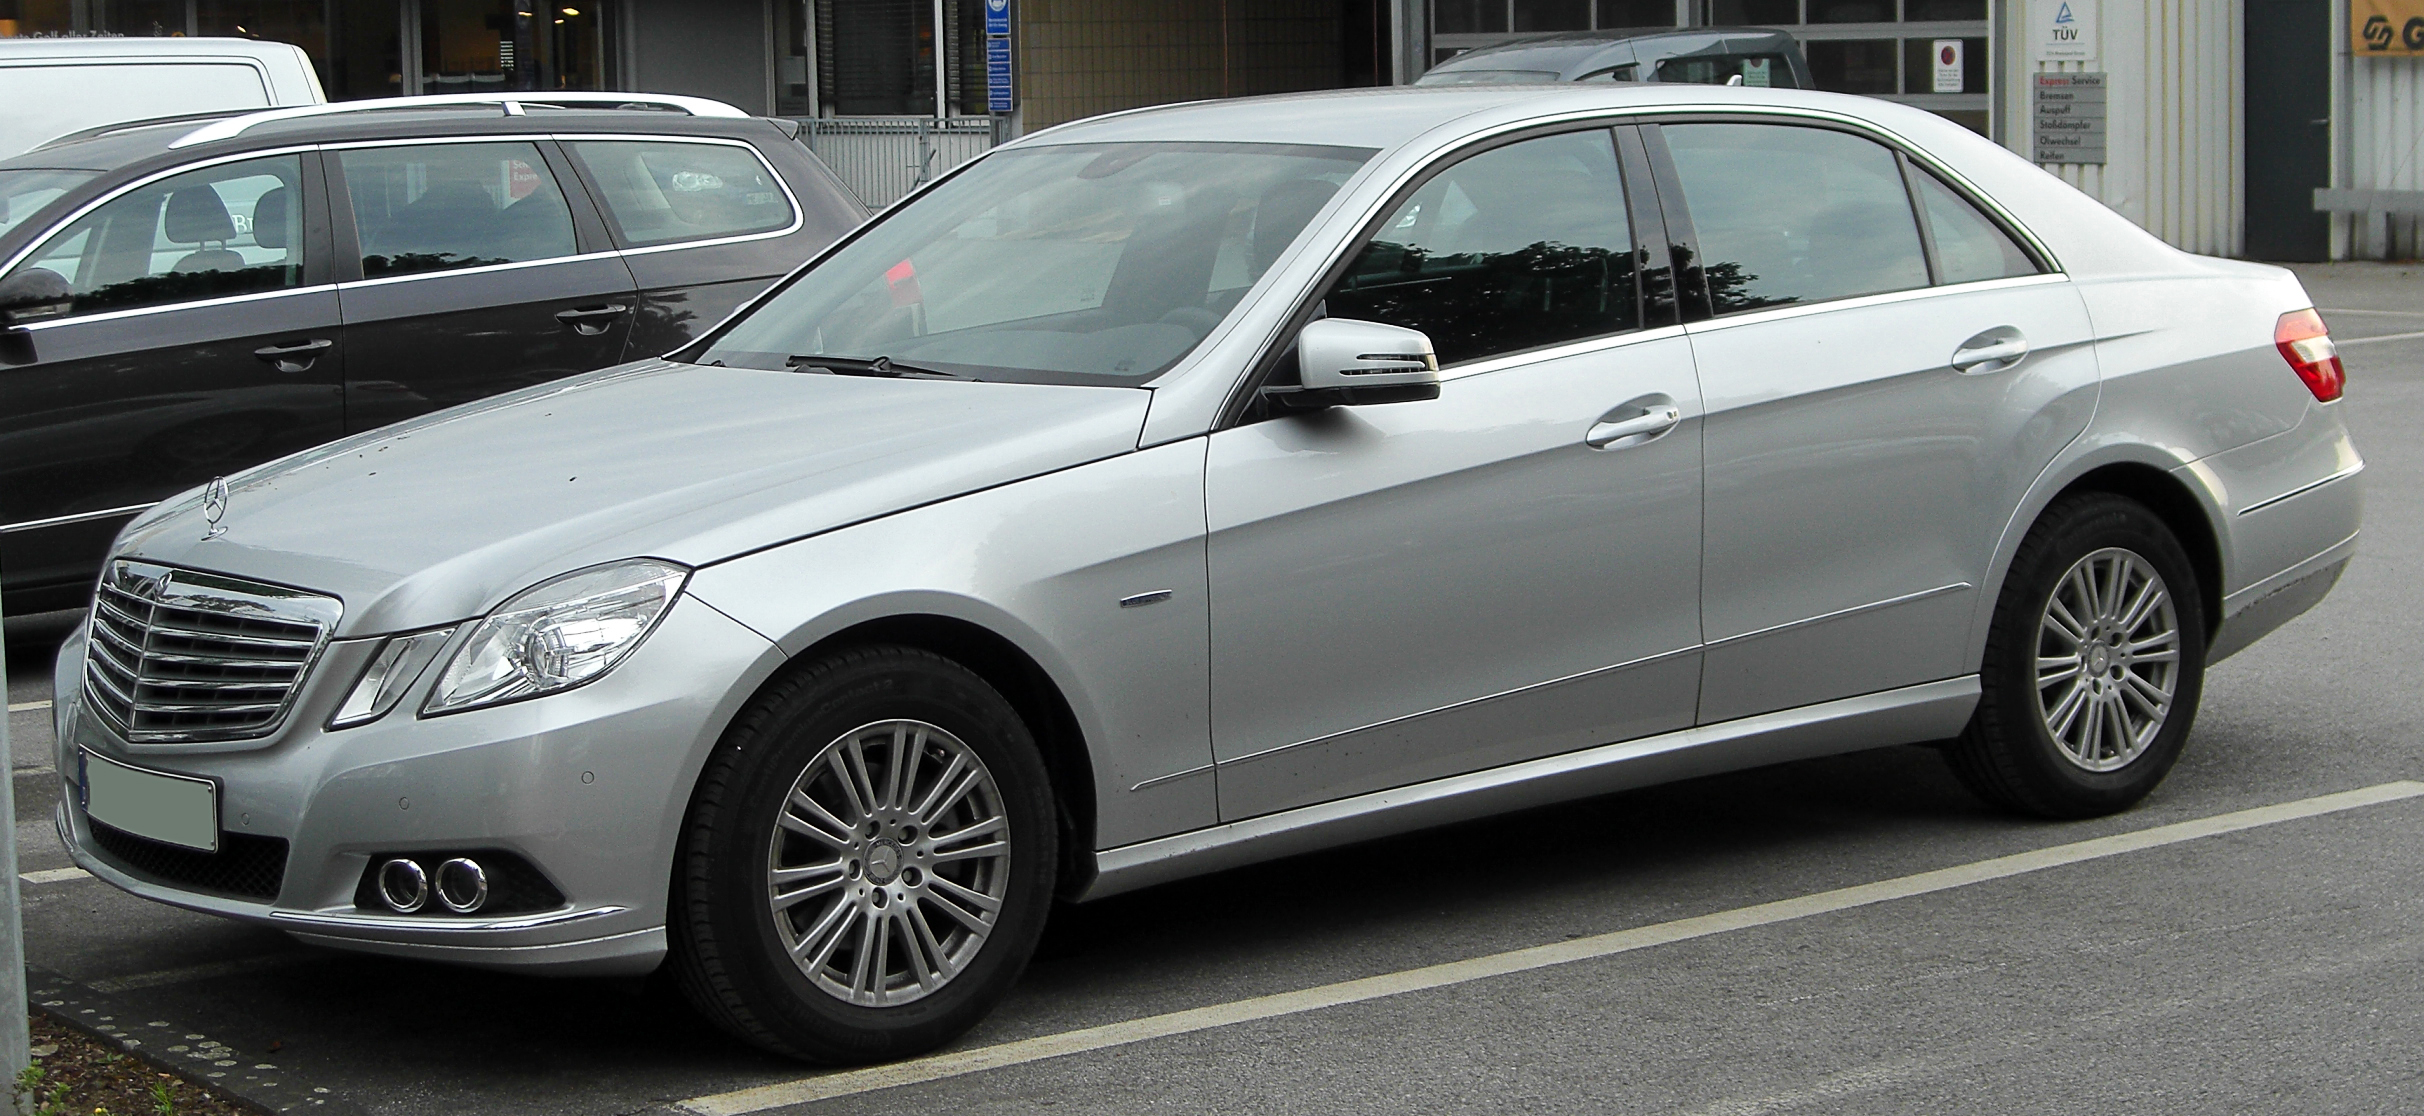 File:Mercedes E 200 CDI BlueEFFICIENCY Elegance (W212) front ...